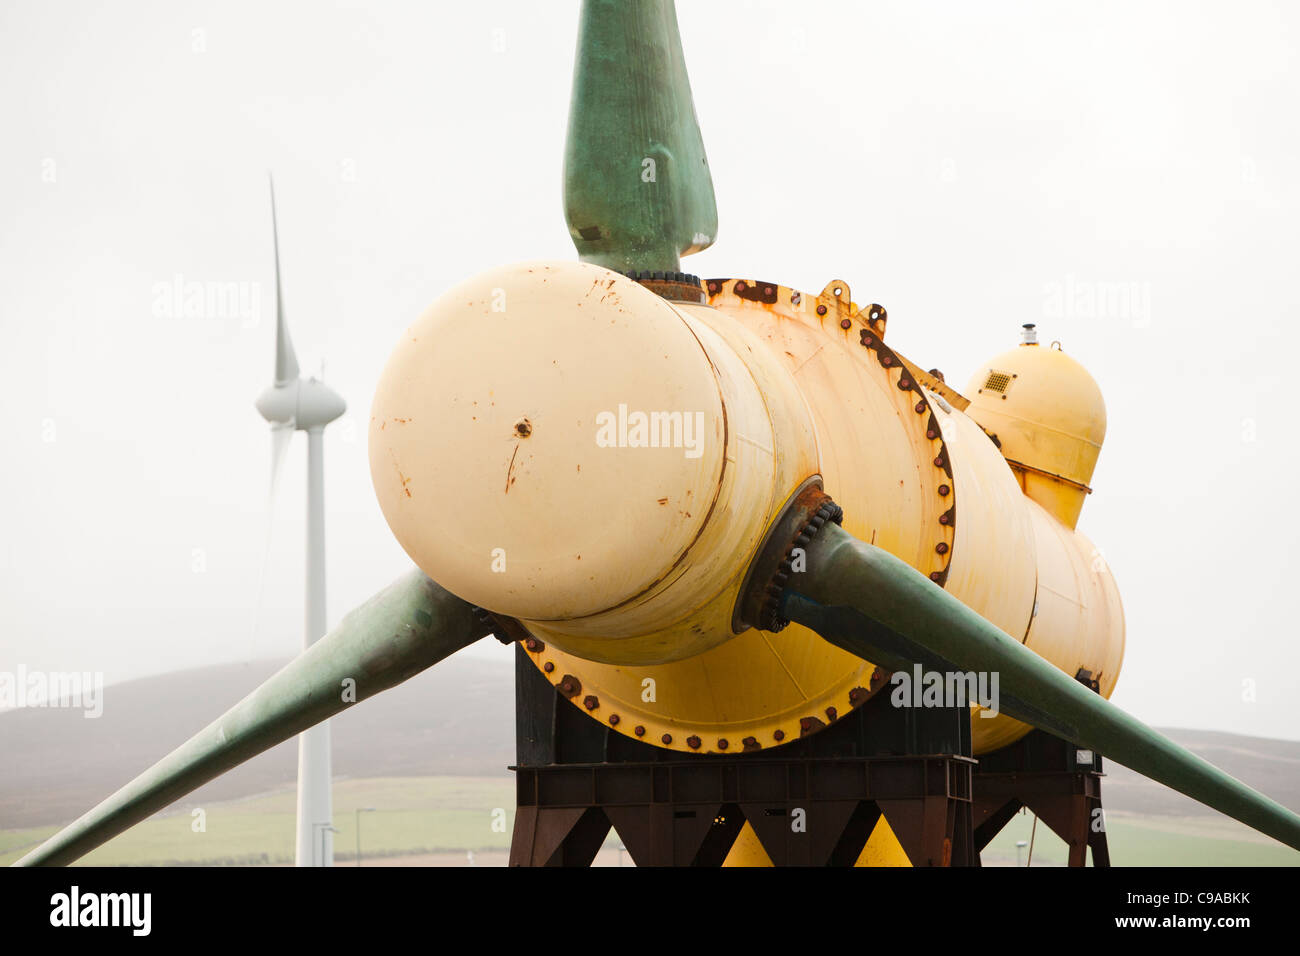 A tidal energy turbine on the dockside in Kirkwall, Orkney, Scotland, UK, with a wind turbine in the background. - Stock Image